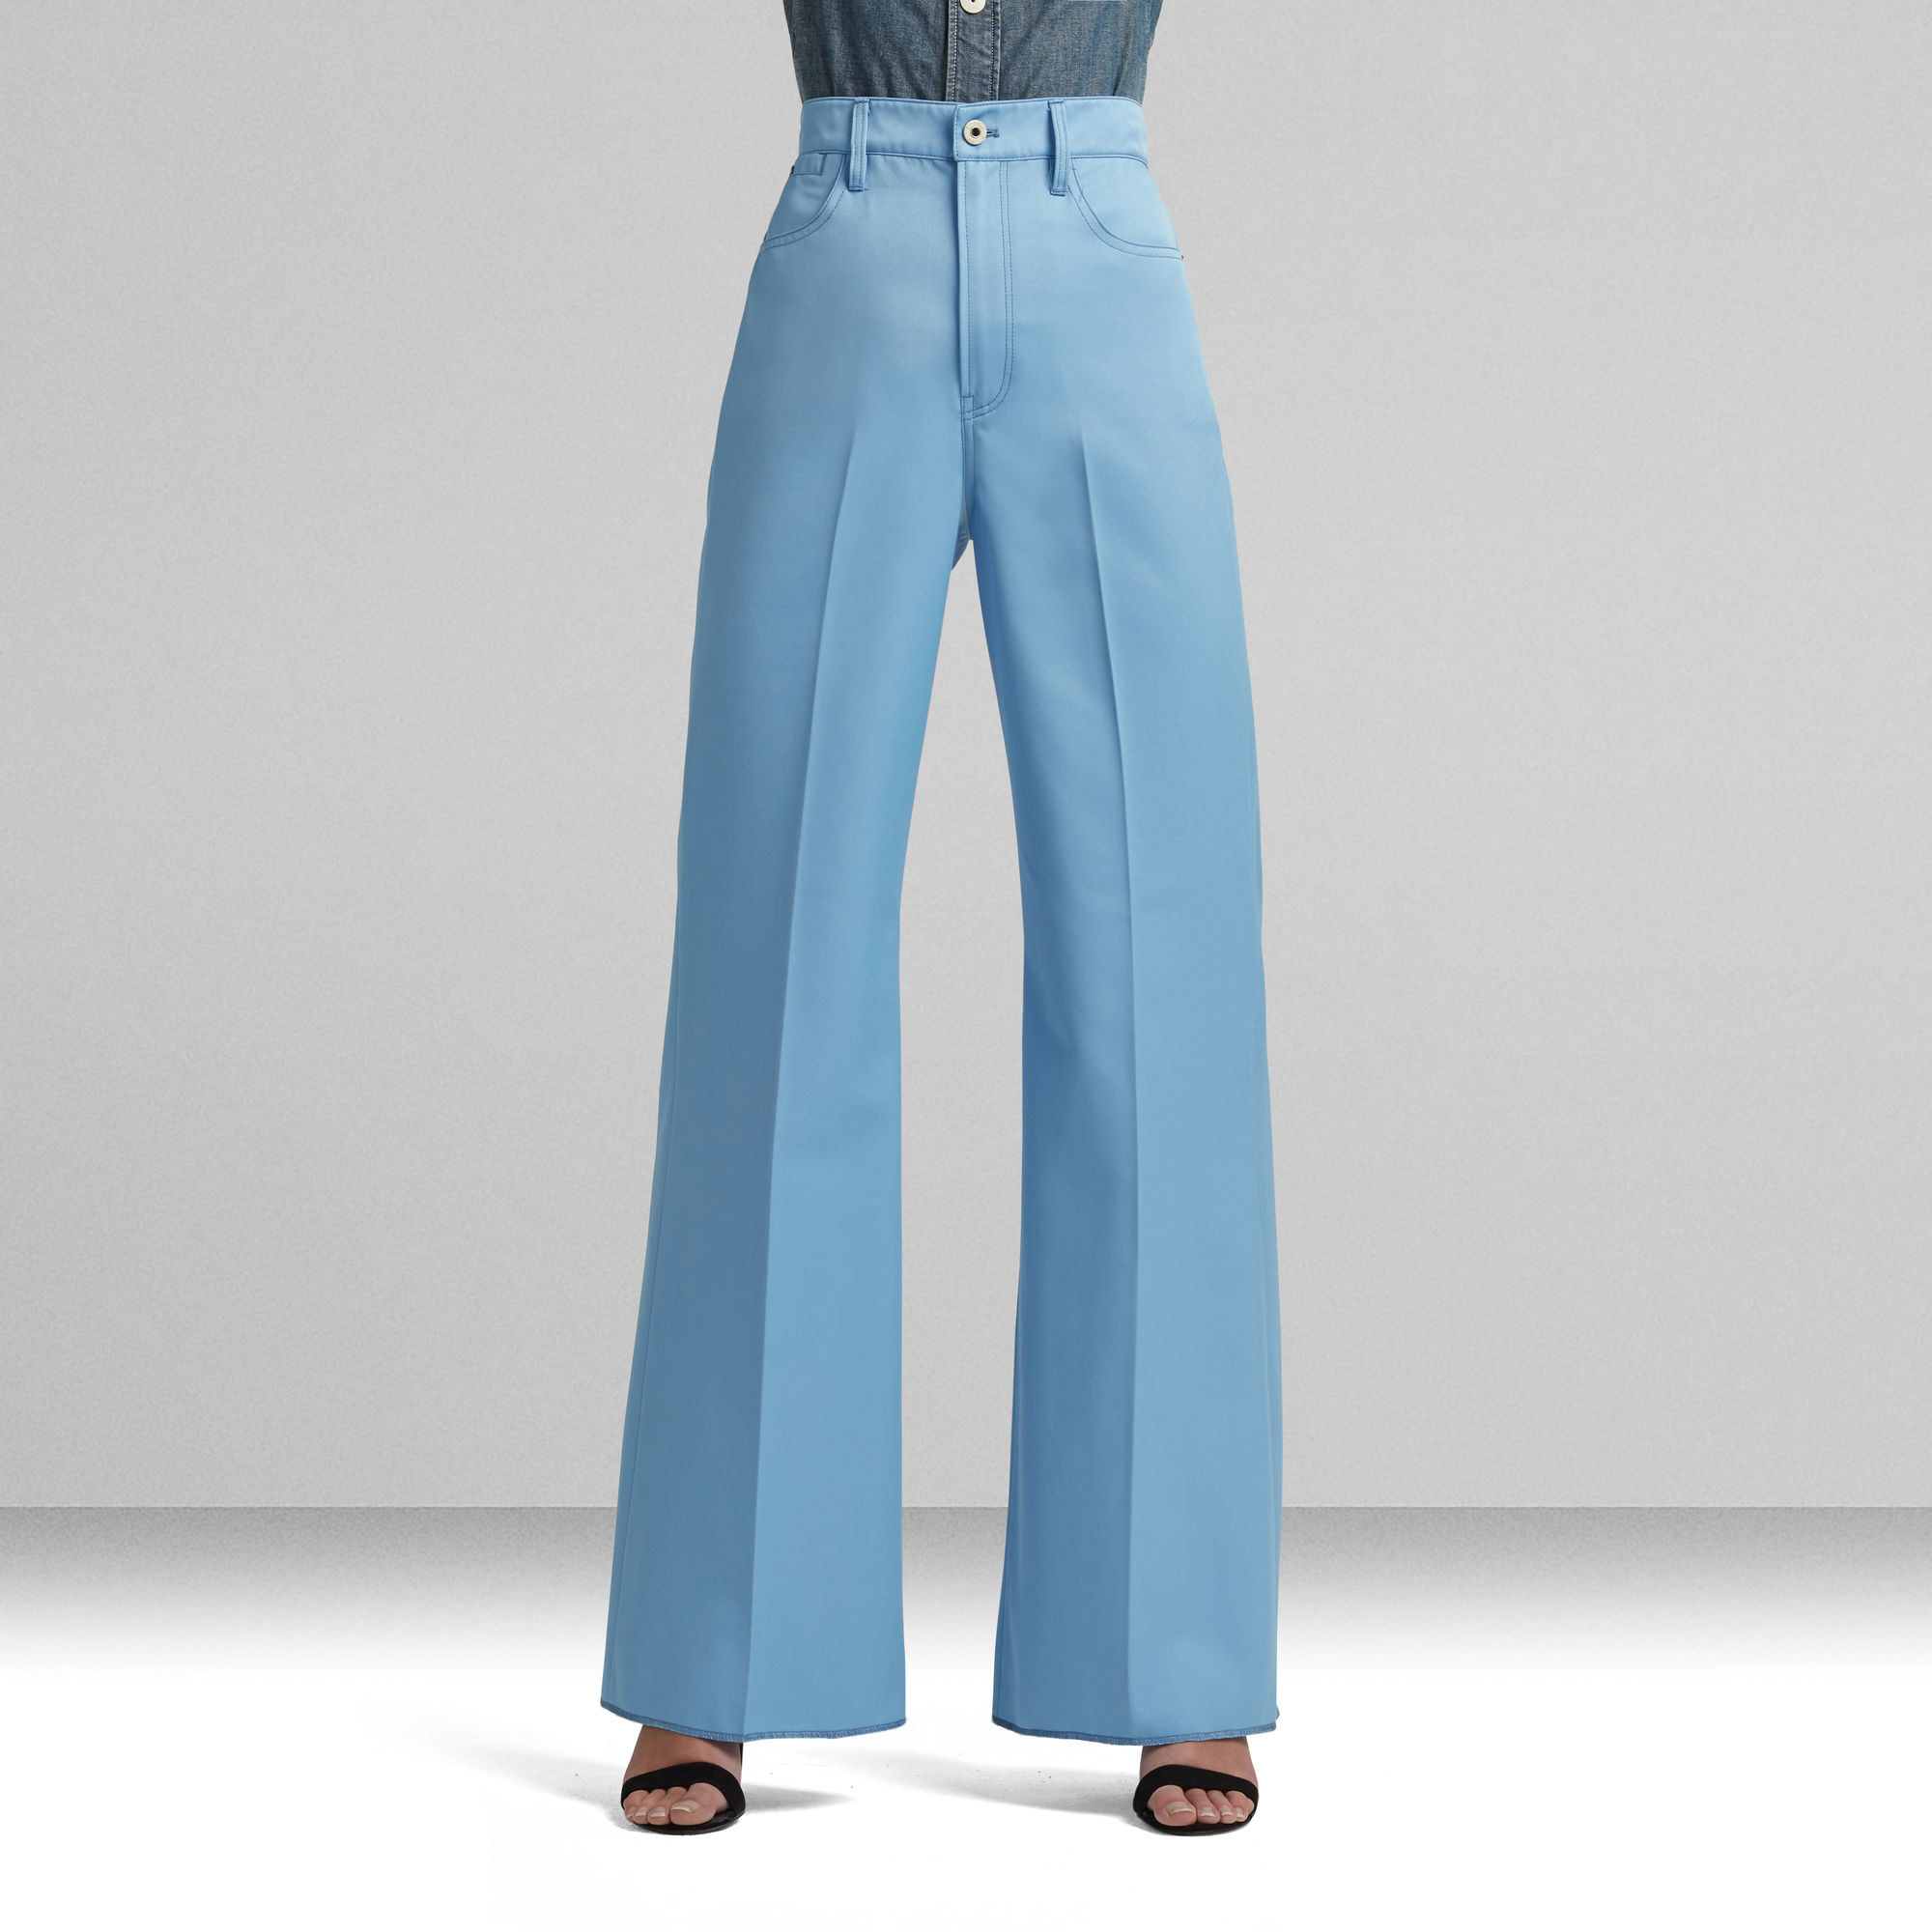 The pants in blue